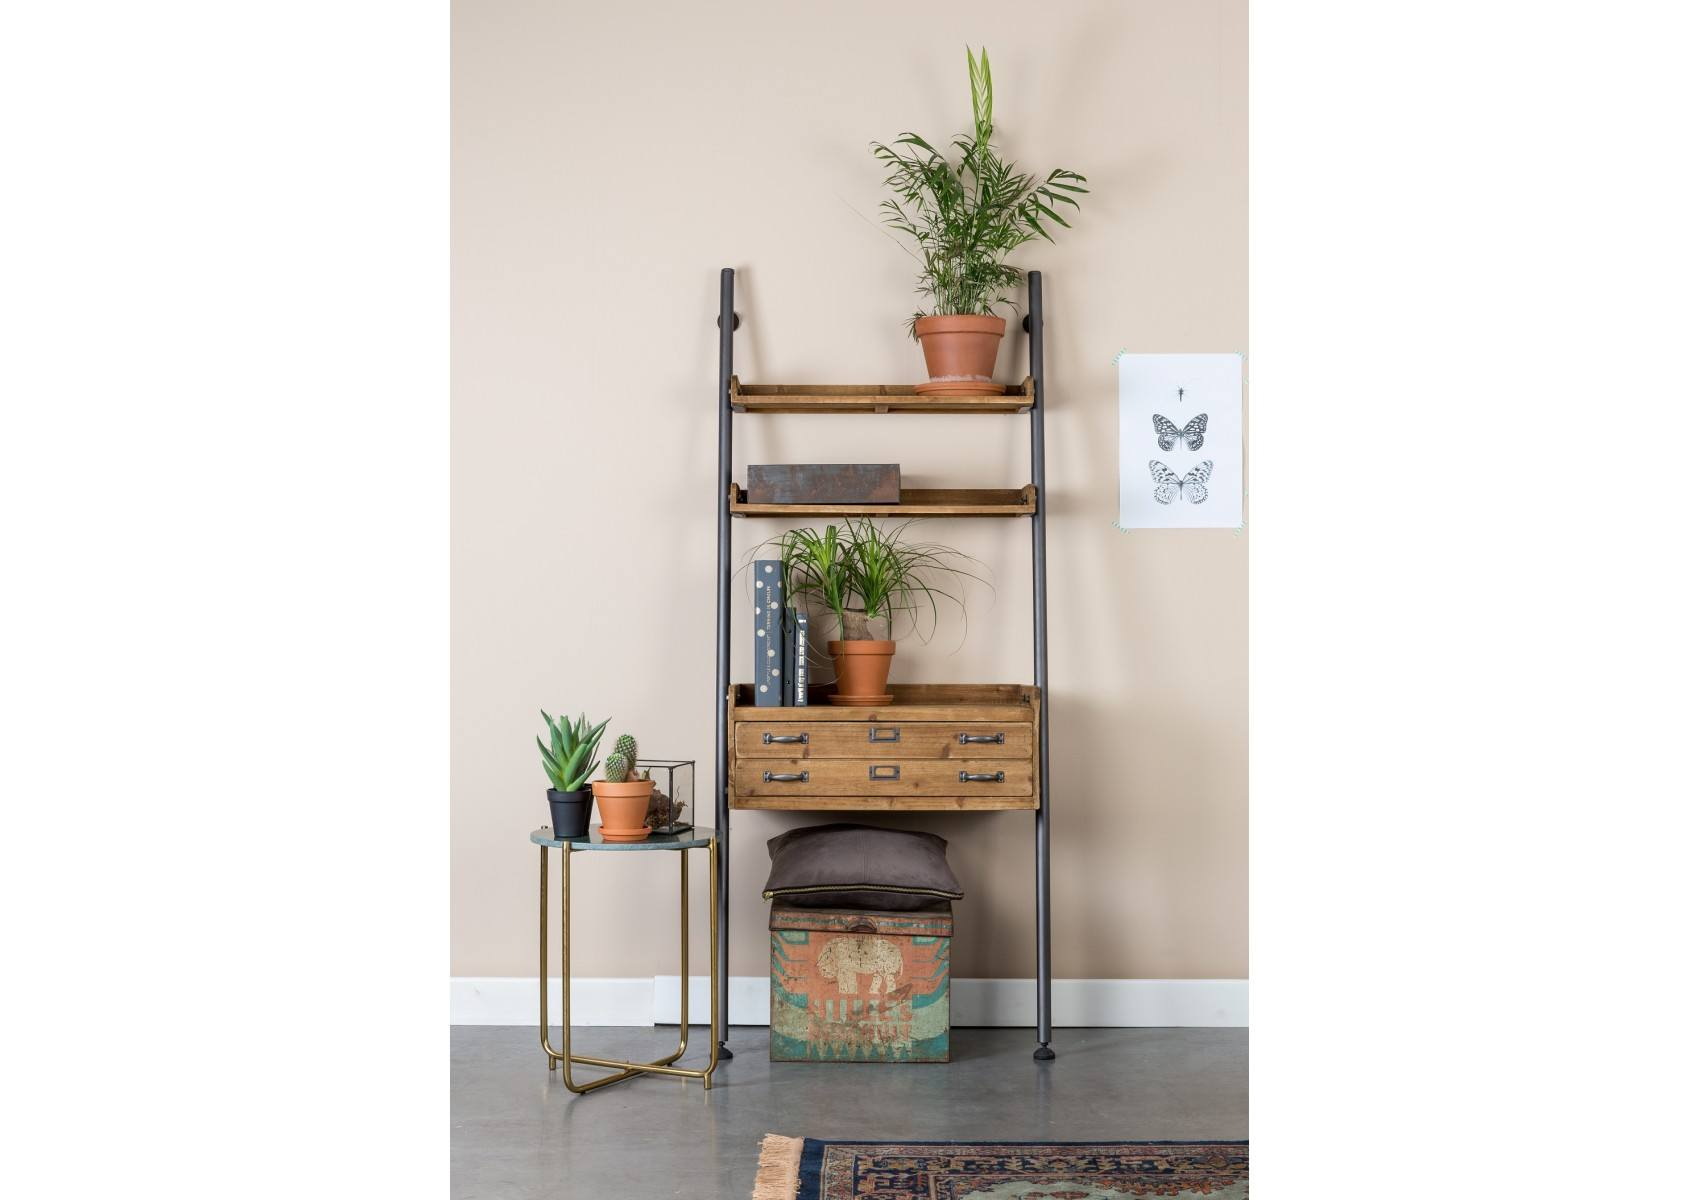 etag re vintage de la collection shelf rook de chez boite design. Black Bedroom Furniture Sets. Home Design Ideas